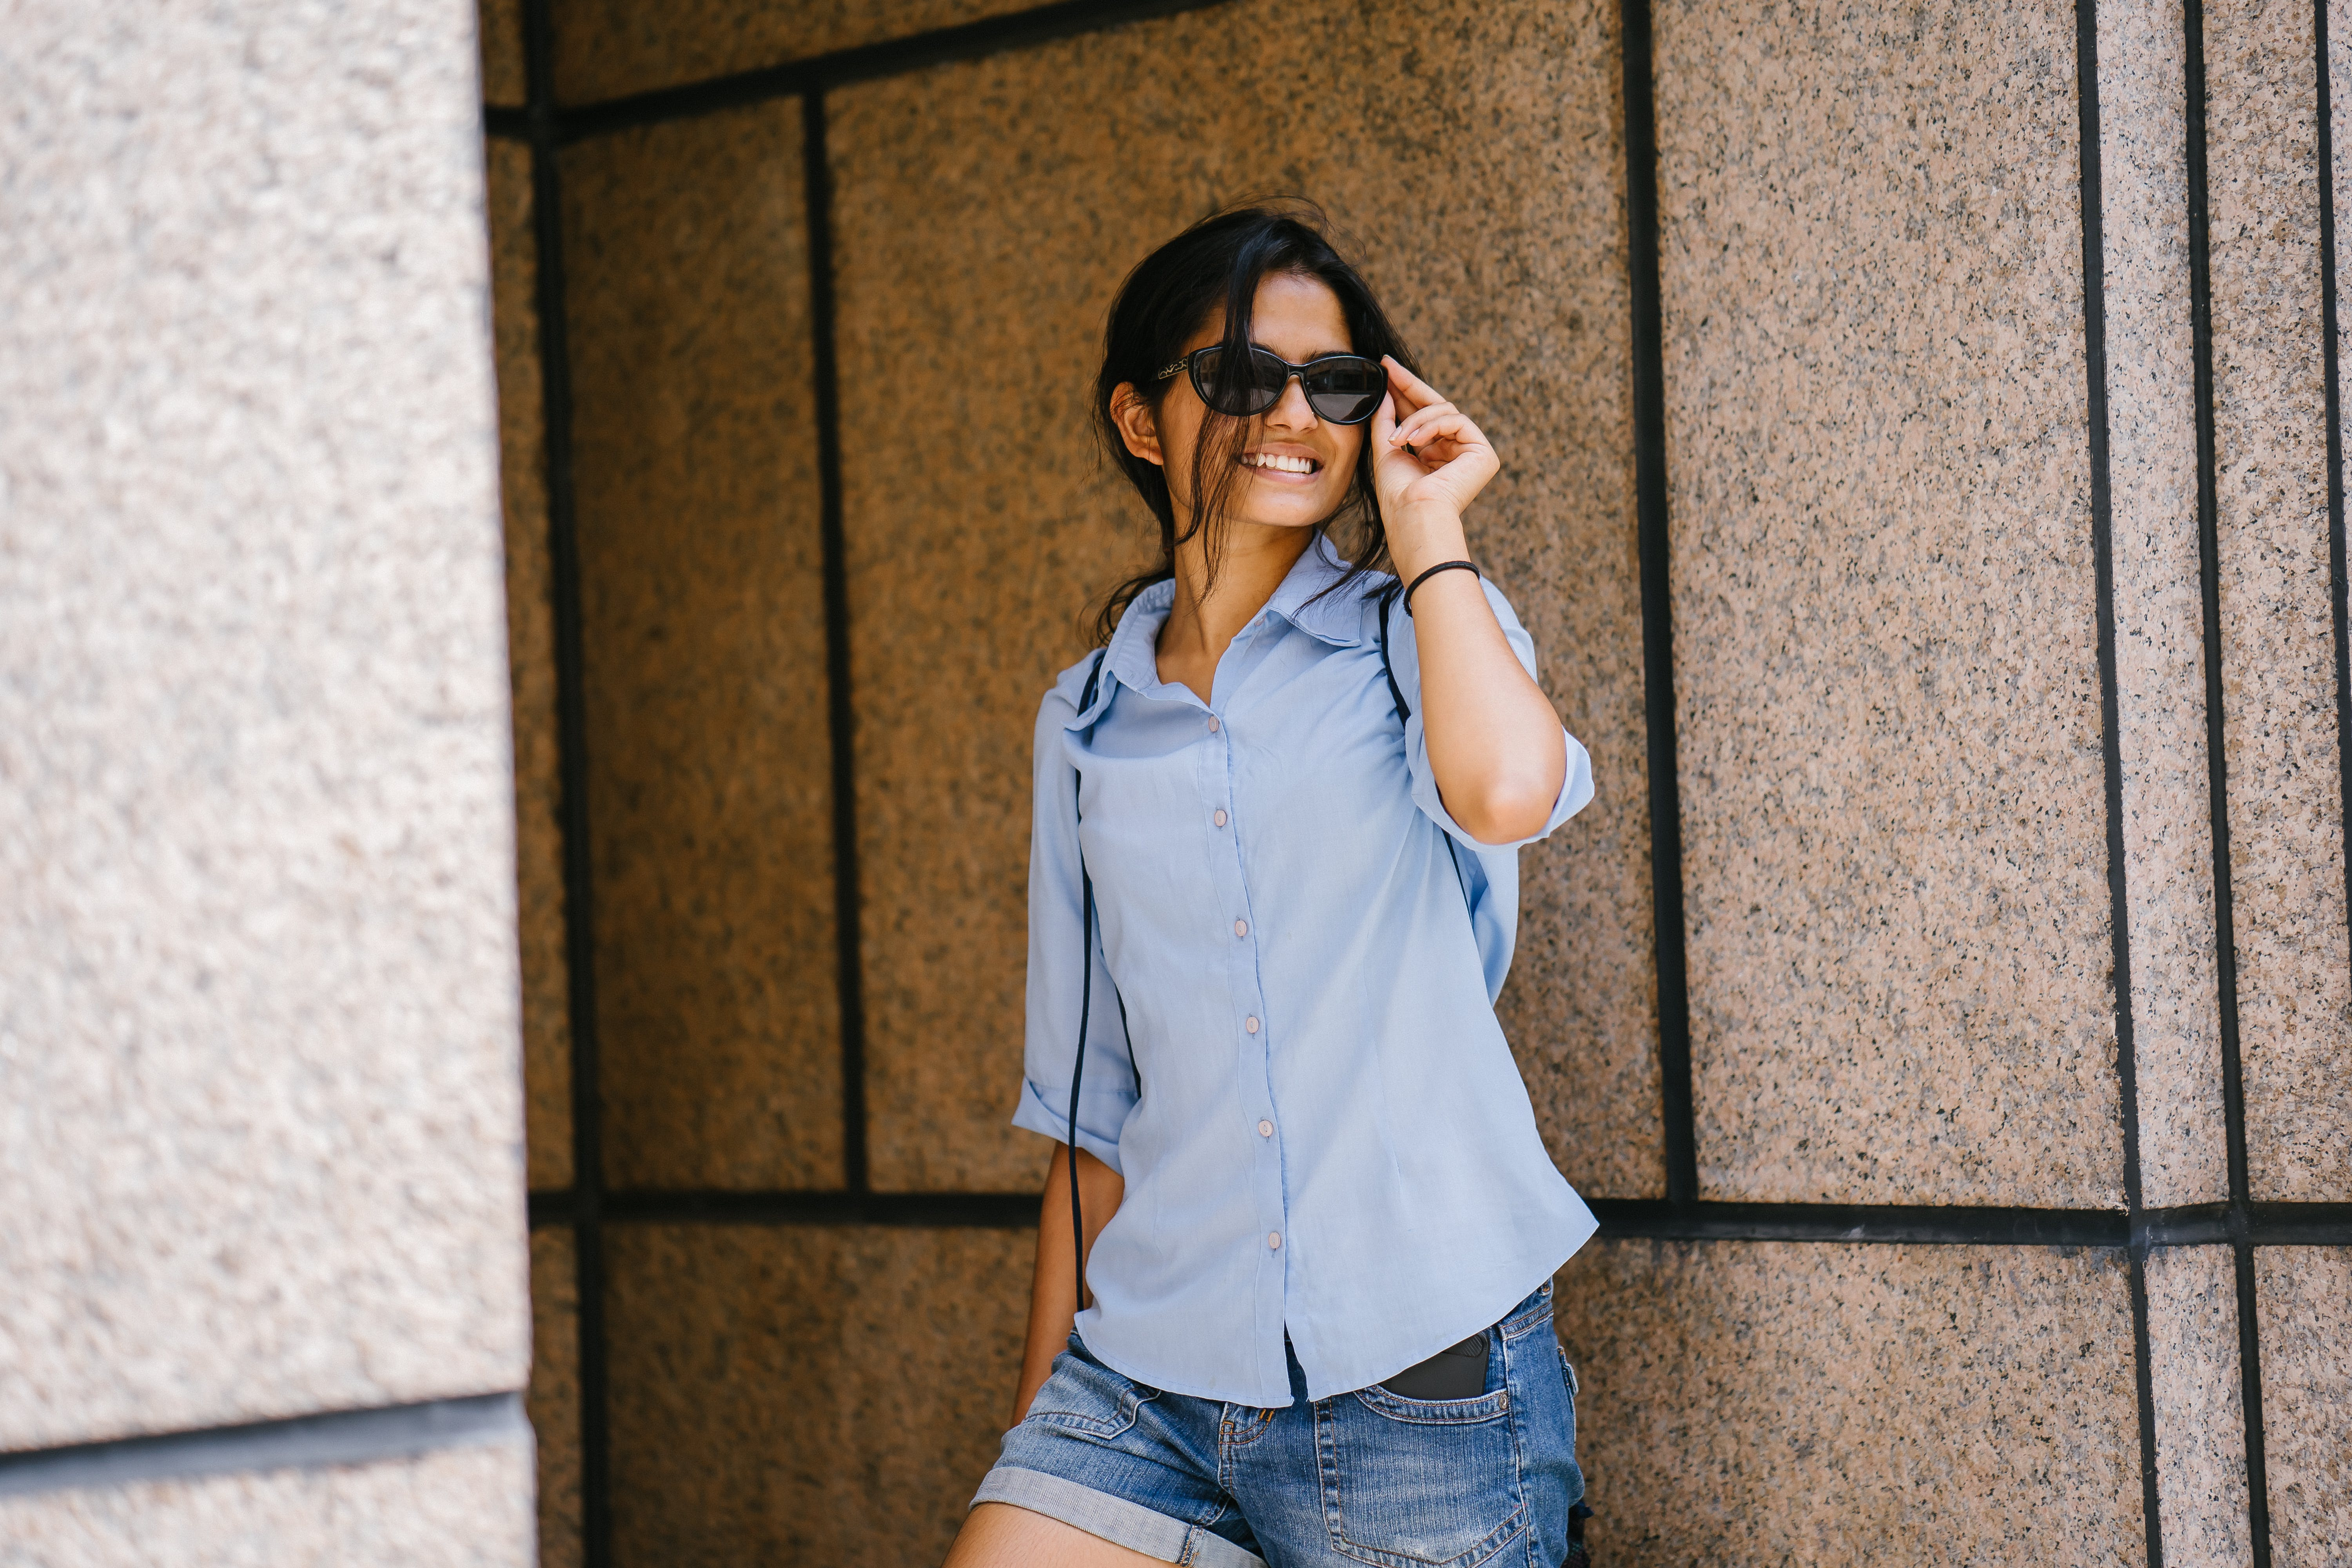 Photo of Smiling Woman in Blue Dress Shirt and Denim Shorts